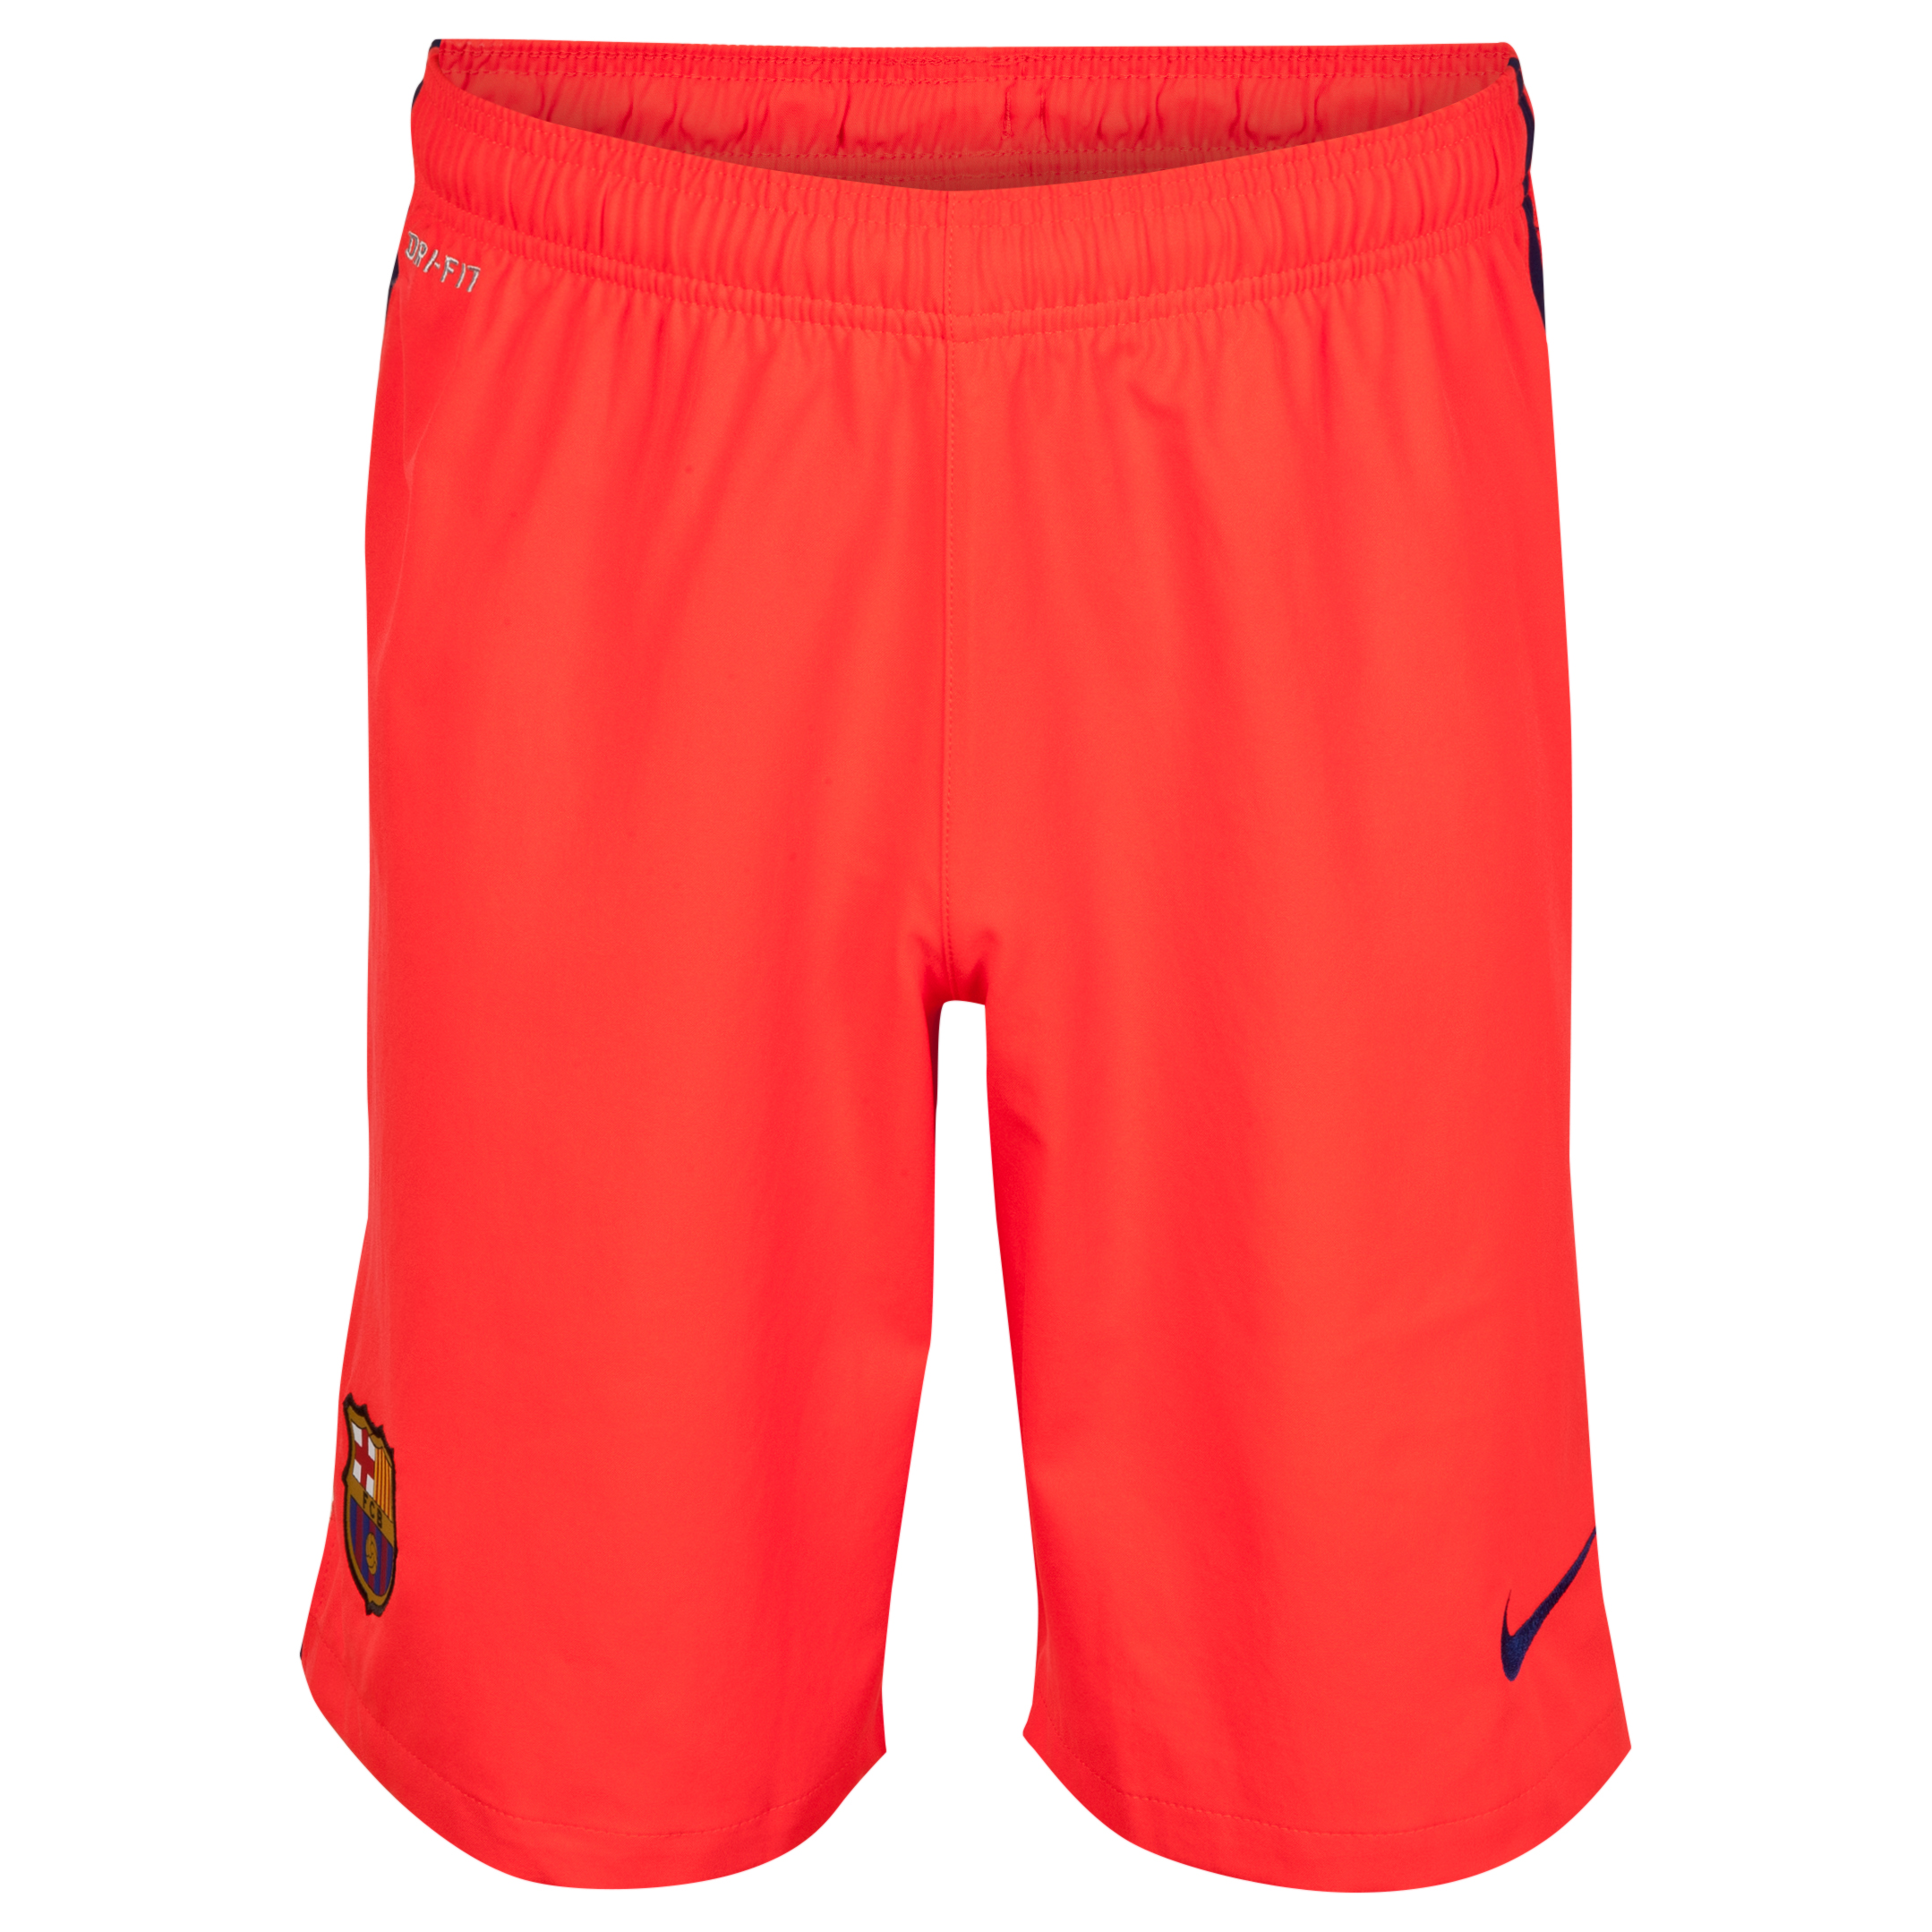 Barcelona Away Shorts 2014/15 - Kids Red